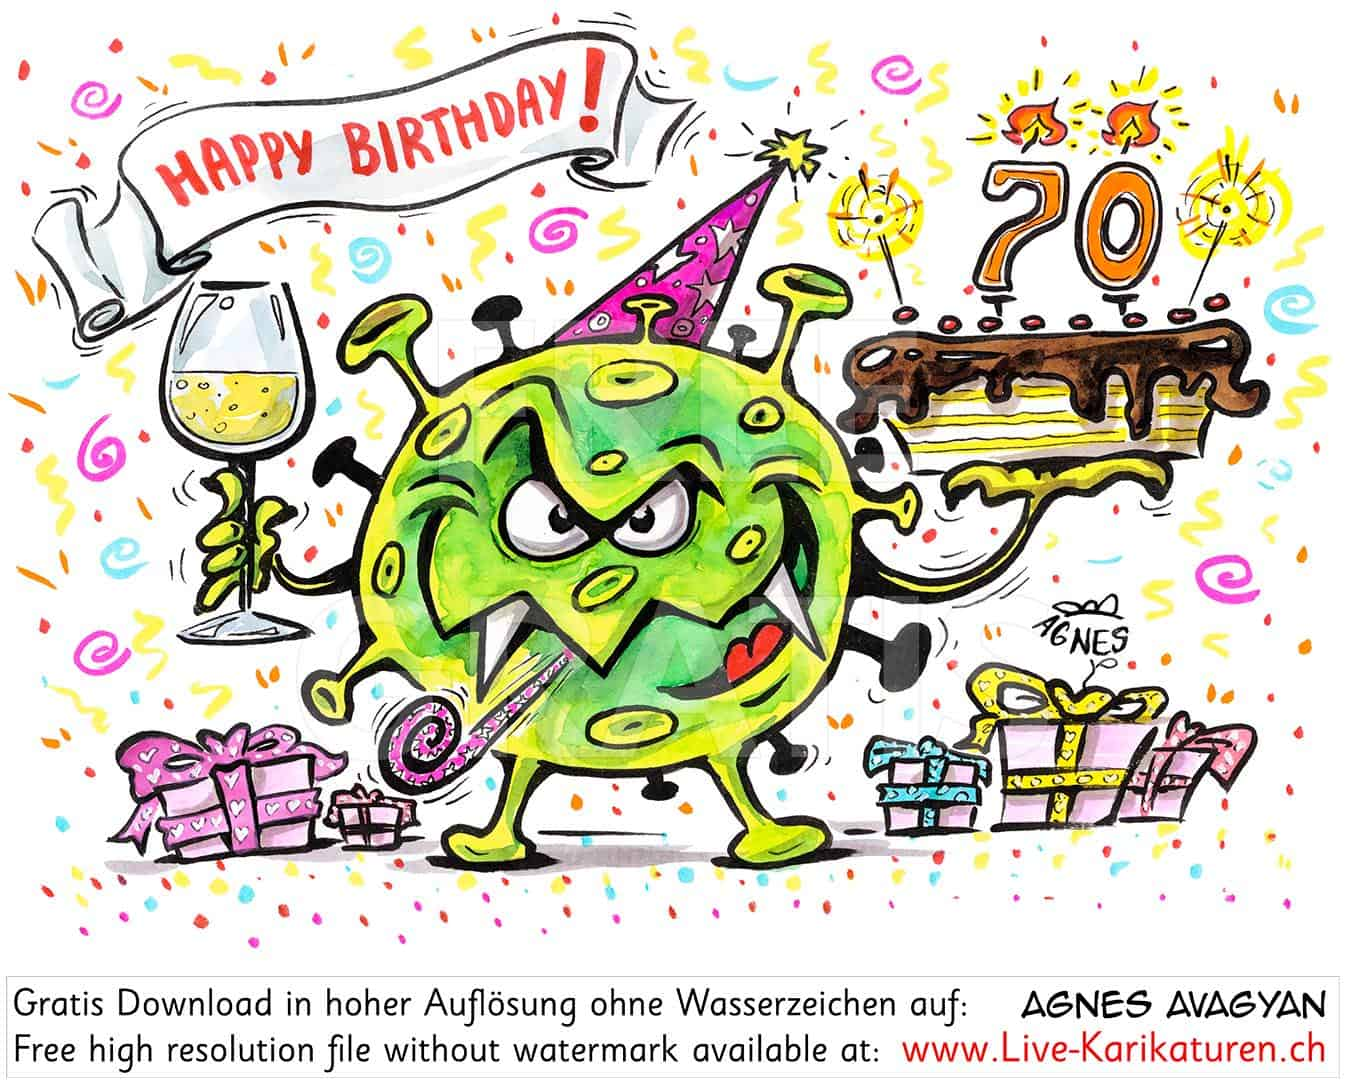 Virus, Corona, Covid-19, Geburtstag, Kuchen, Torte, Happy Birthday, Jahre, Ziffer, Zahl, Korona, Agnes Live-Karikaturen, Clipart, Comic, Cartoon, Illustration, Cartoon, Comic, Karikatur, Zeichnung, Download, kostenlos, Gratisbild, gratis, free, Kunst, Kuenstler, Live Karikaturist, Comiczeichner, Armenia